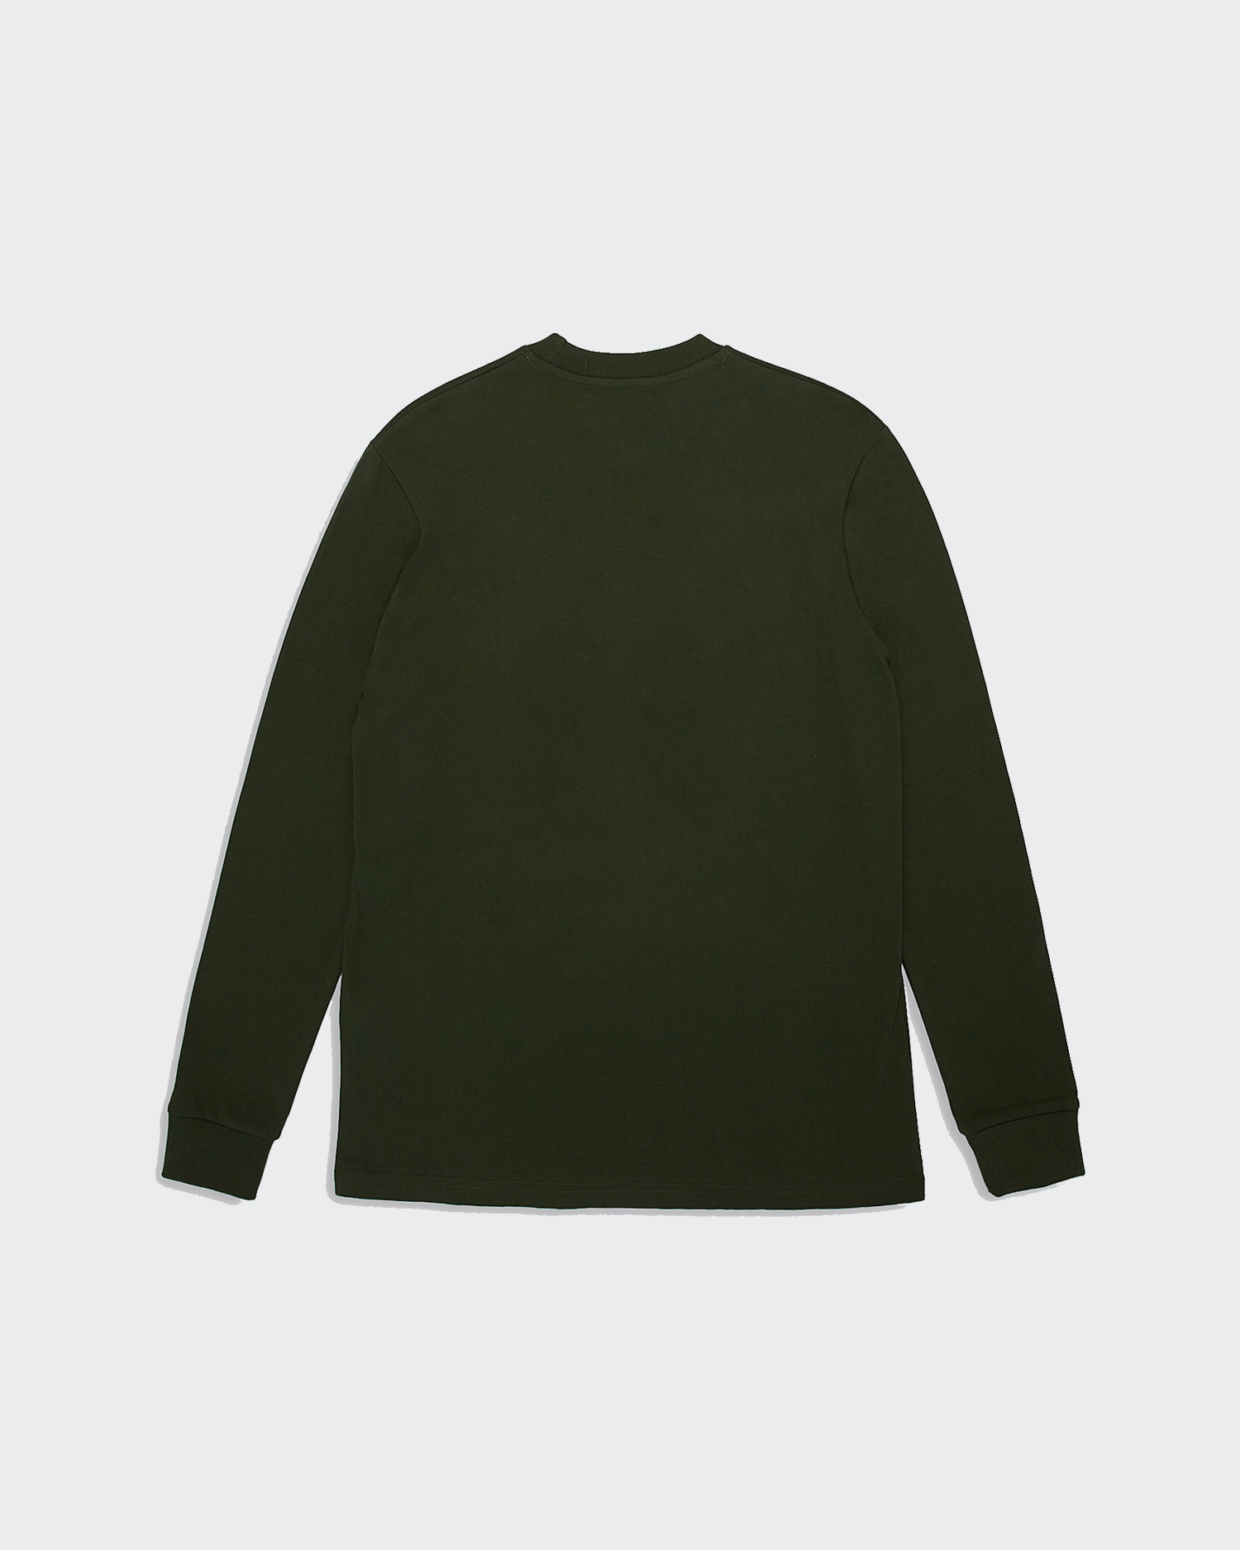 Lack Of Guidance Bruno Long Sleeve